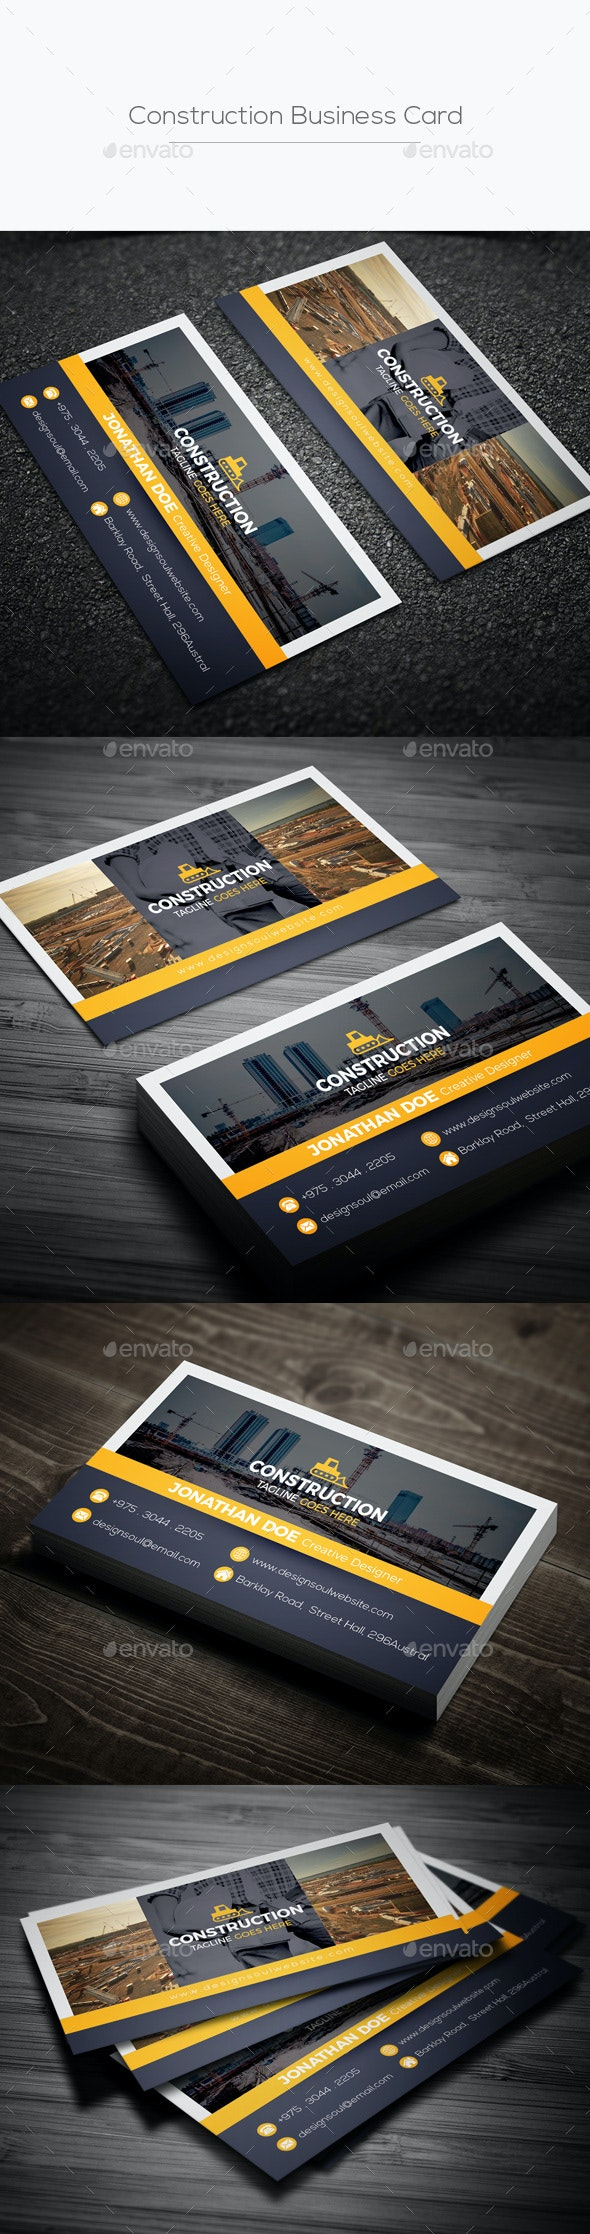 Construction Business Card - Business Cards Print Templates